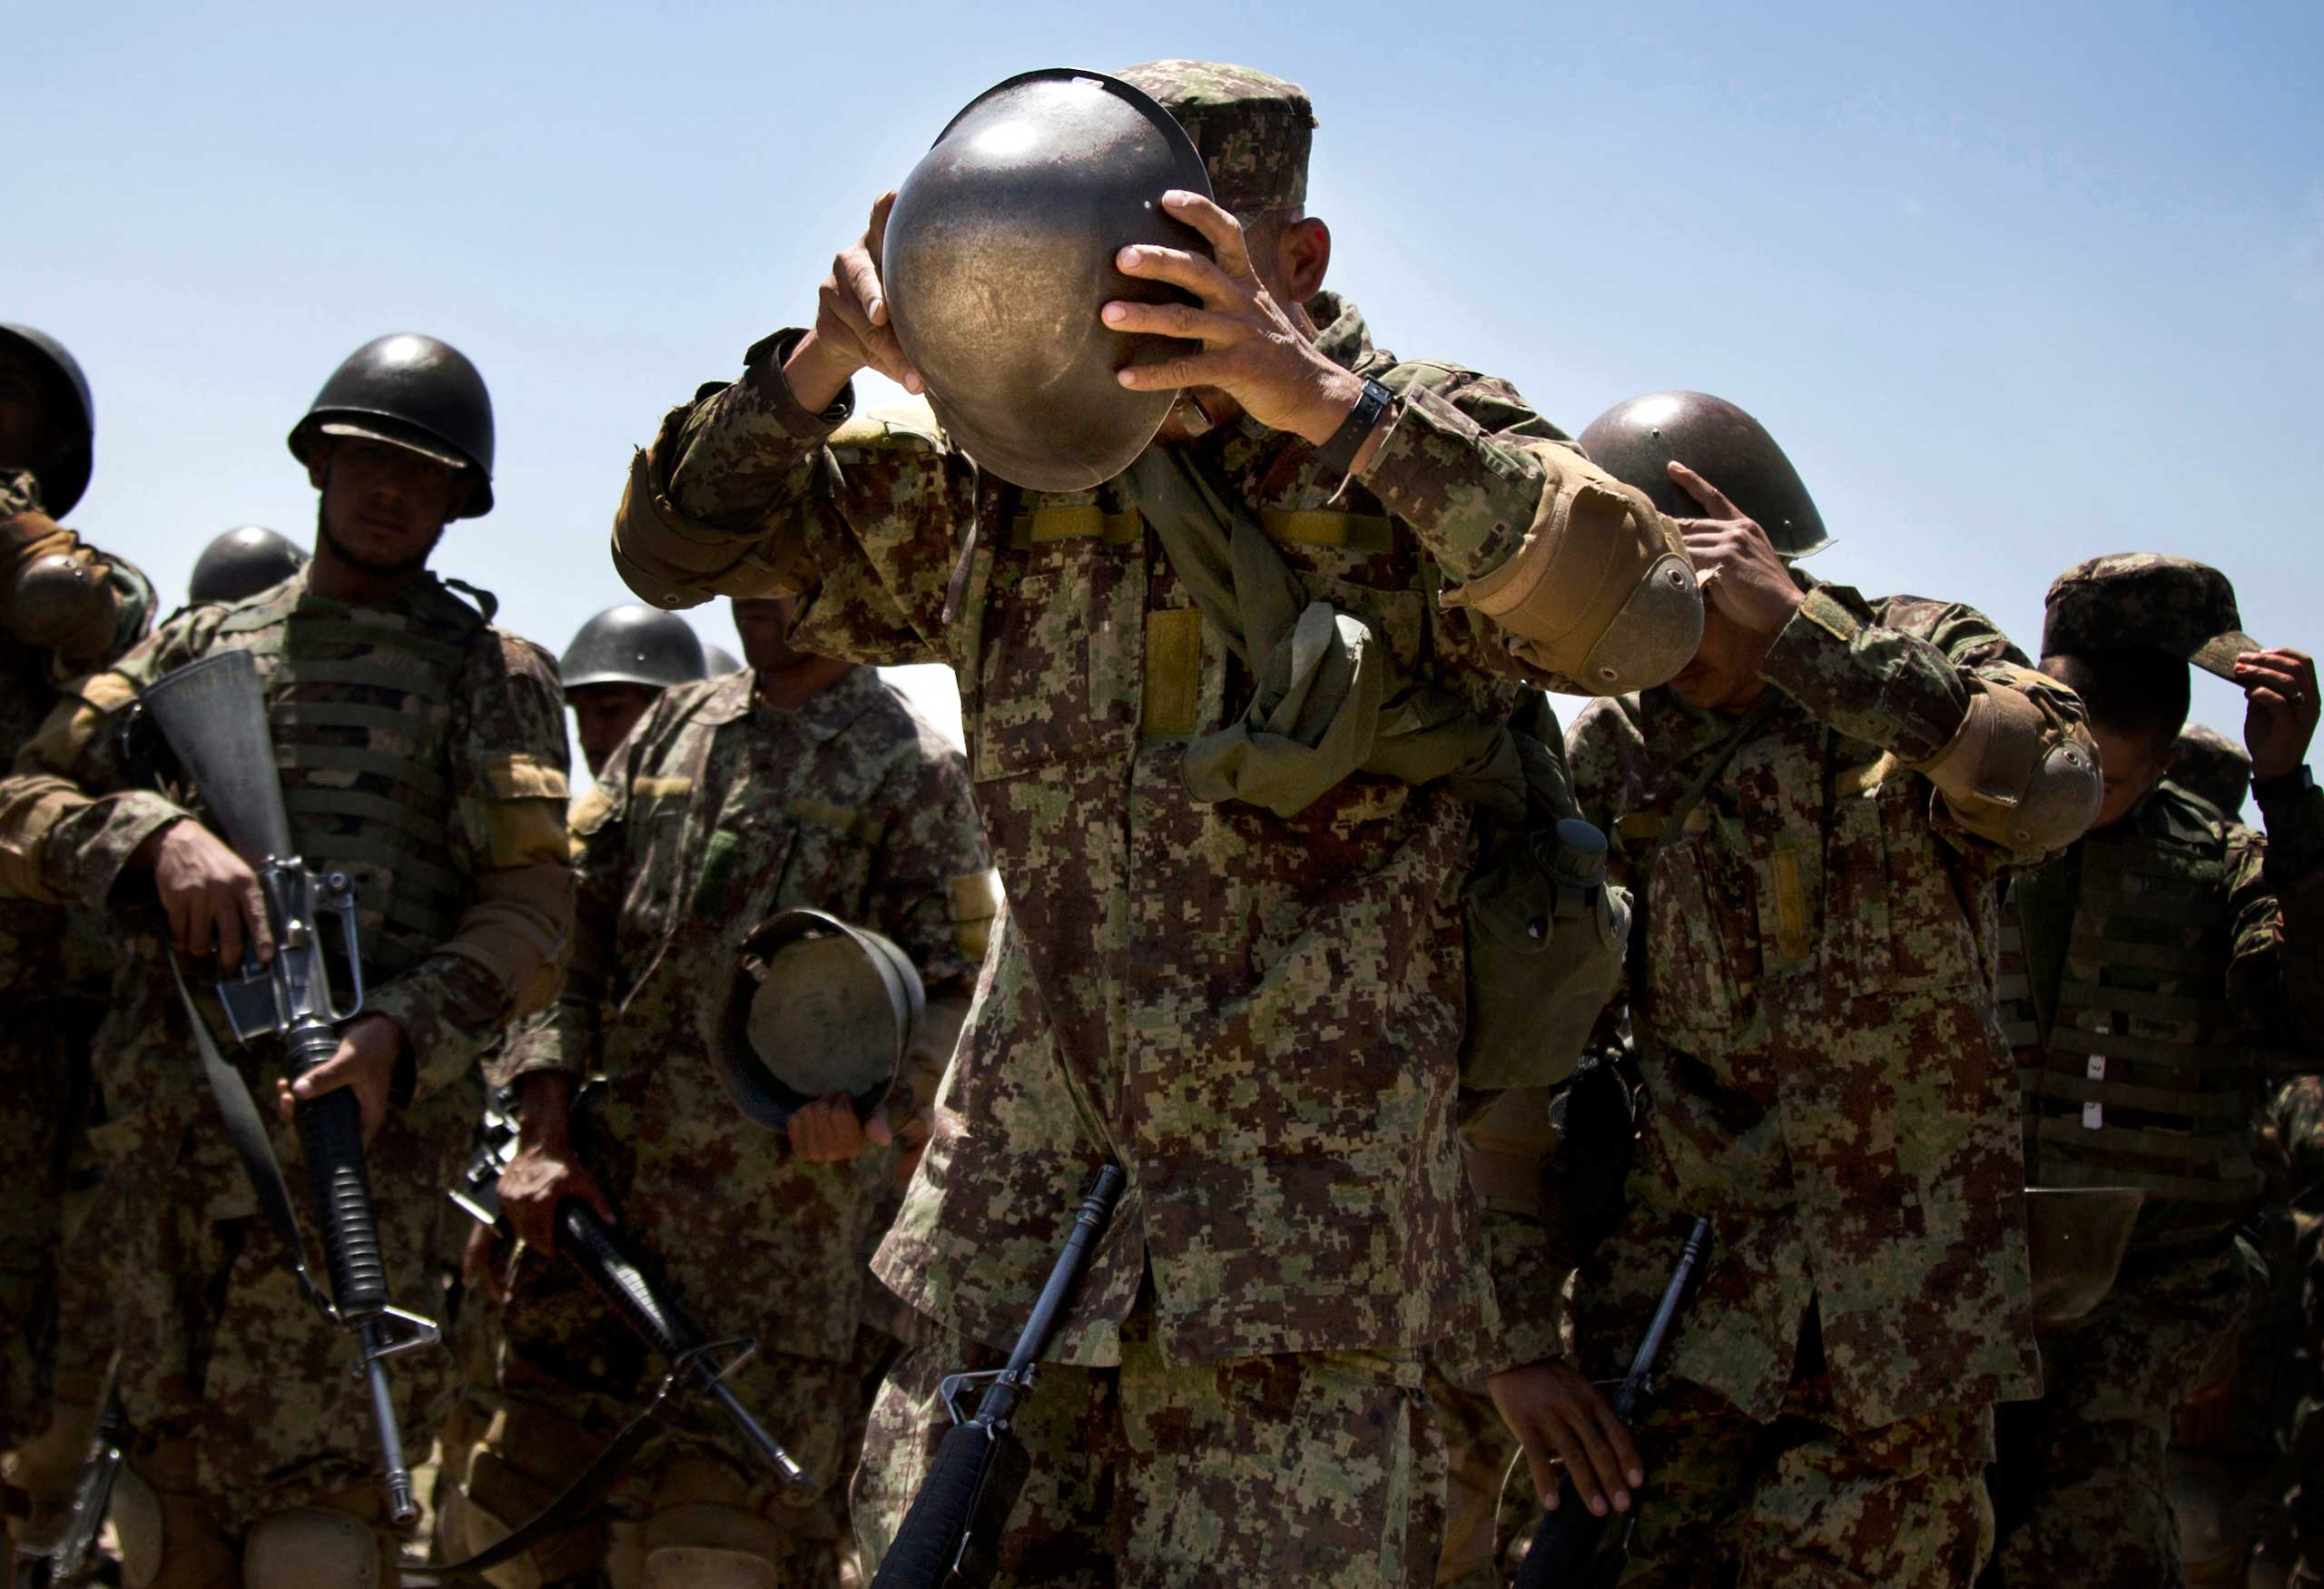 An Afghan Army soldier adjusts his helmet at a training facility on the outskirts of Kabul, May 8, 2013.